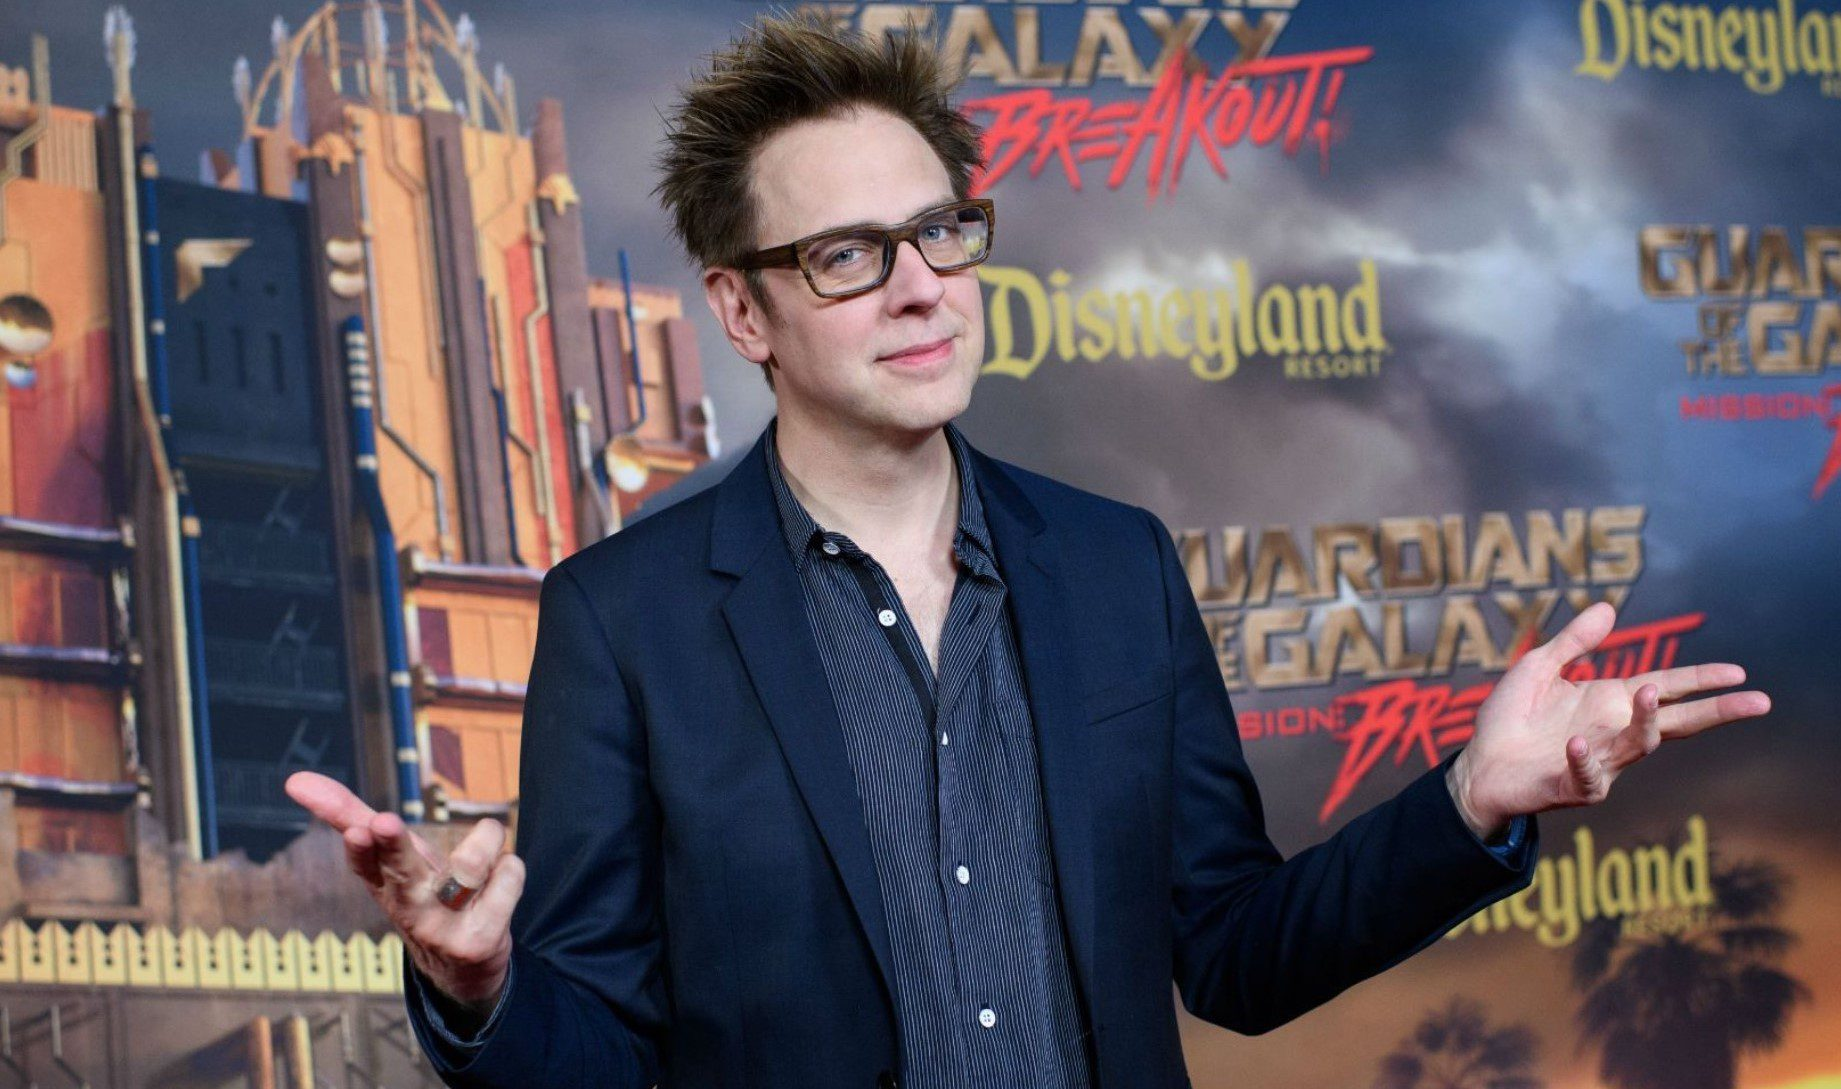 James Gunn says Guardians of the Galaxy Vol. 3's script is finished